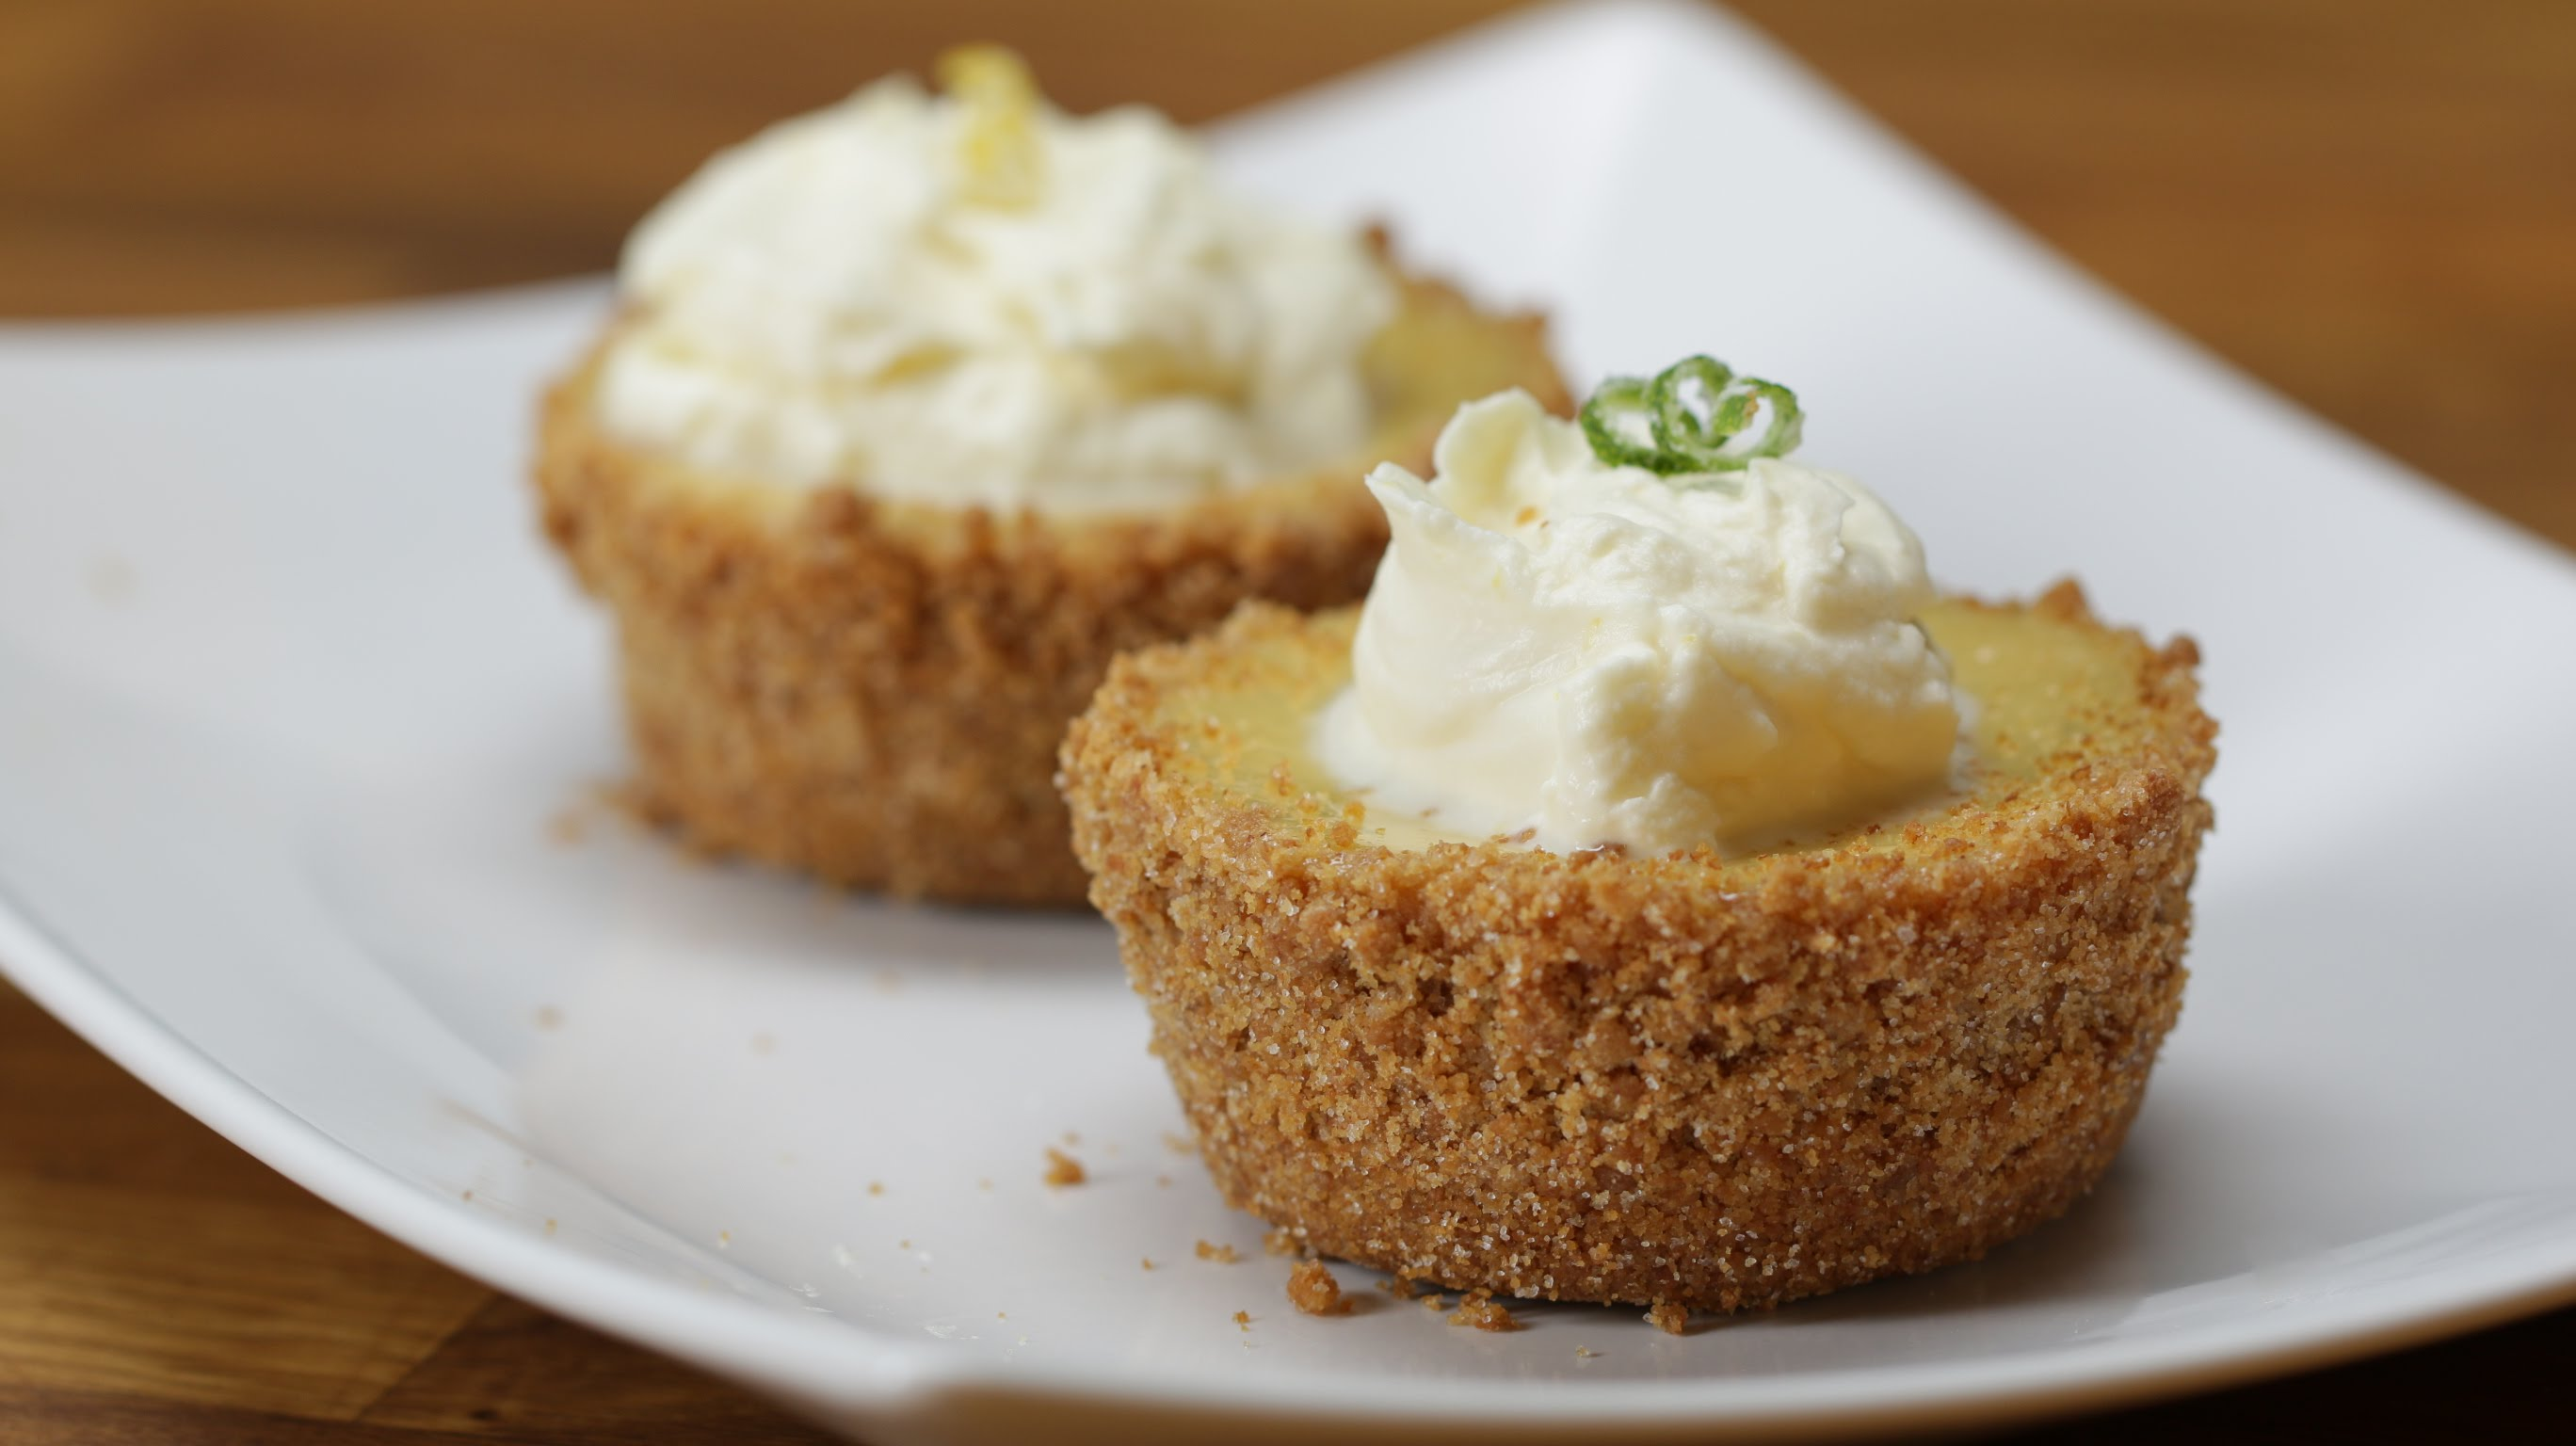 She Took This Traditional Key Lime Pie And Gave It A Hollywood Makeover